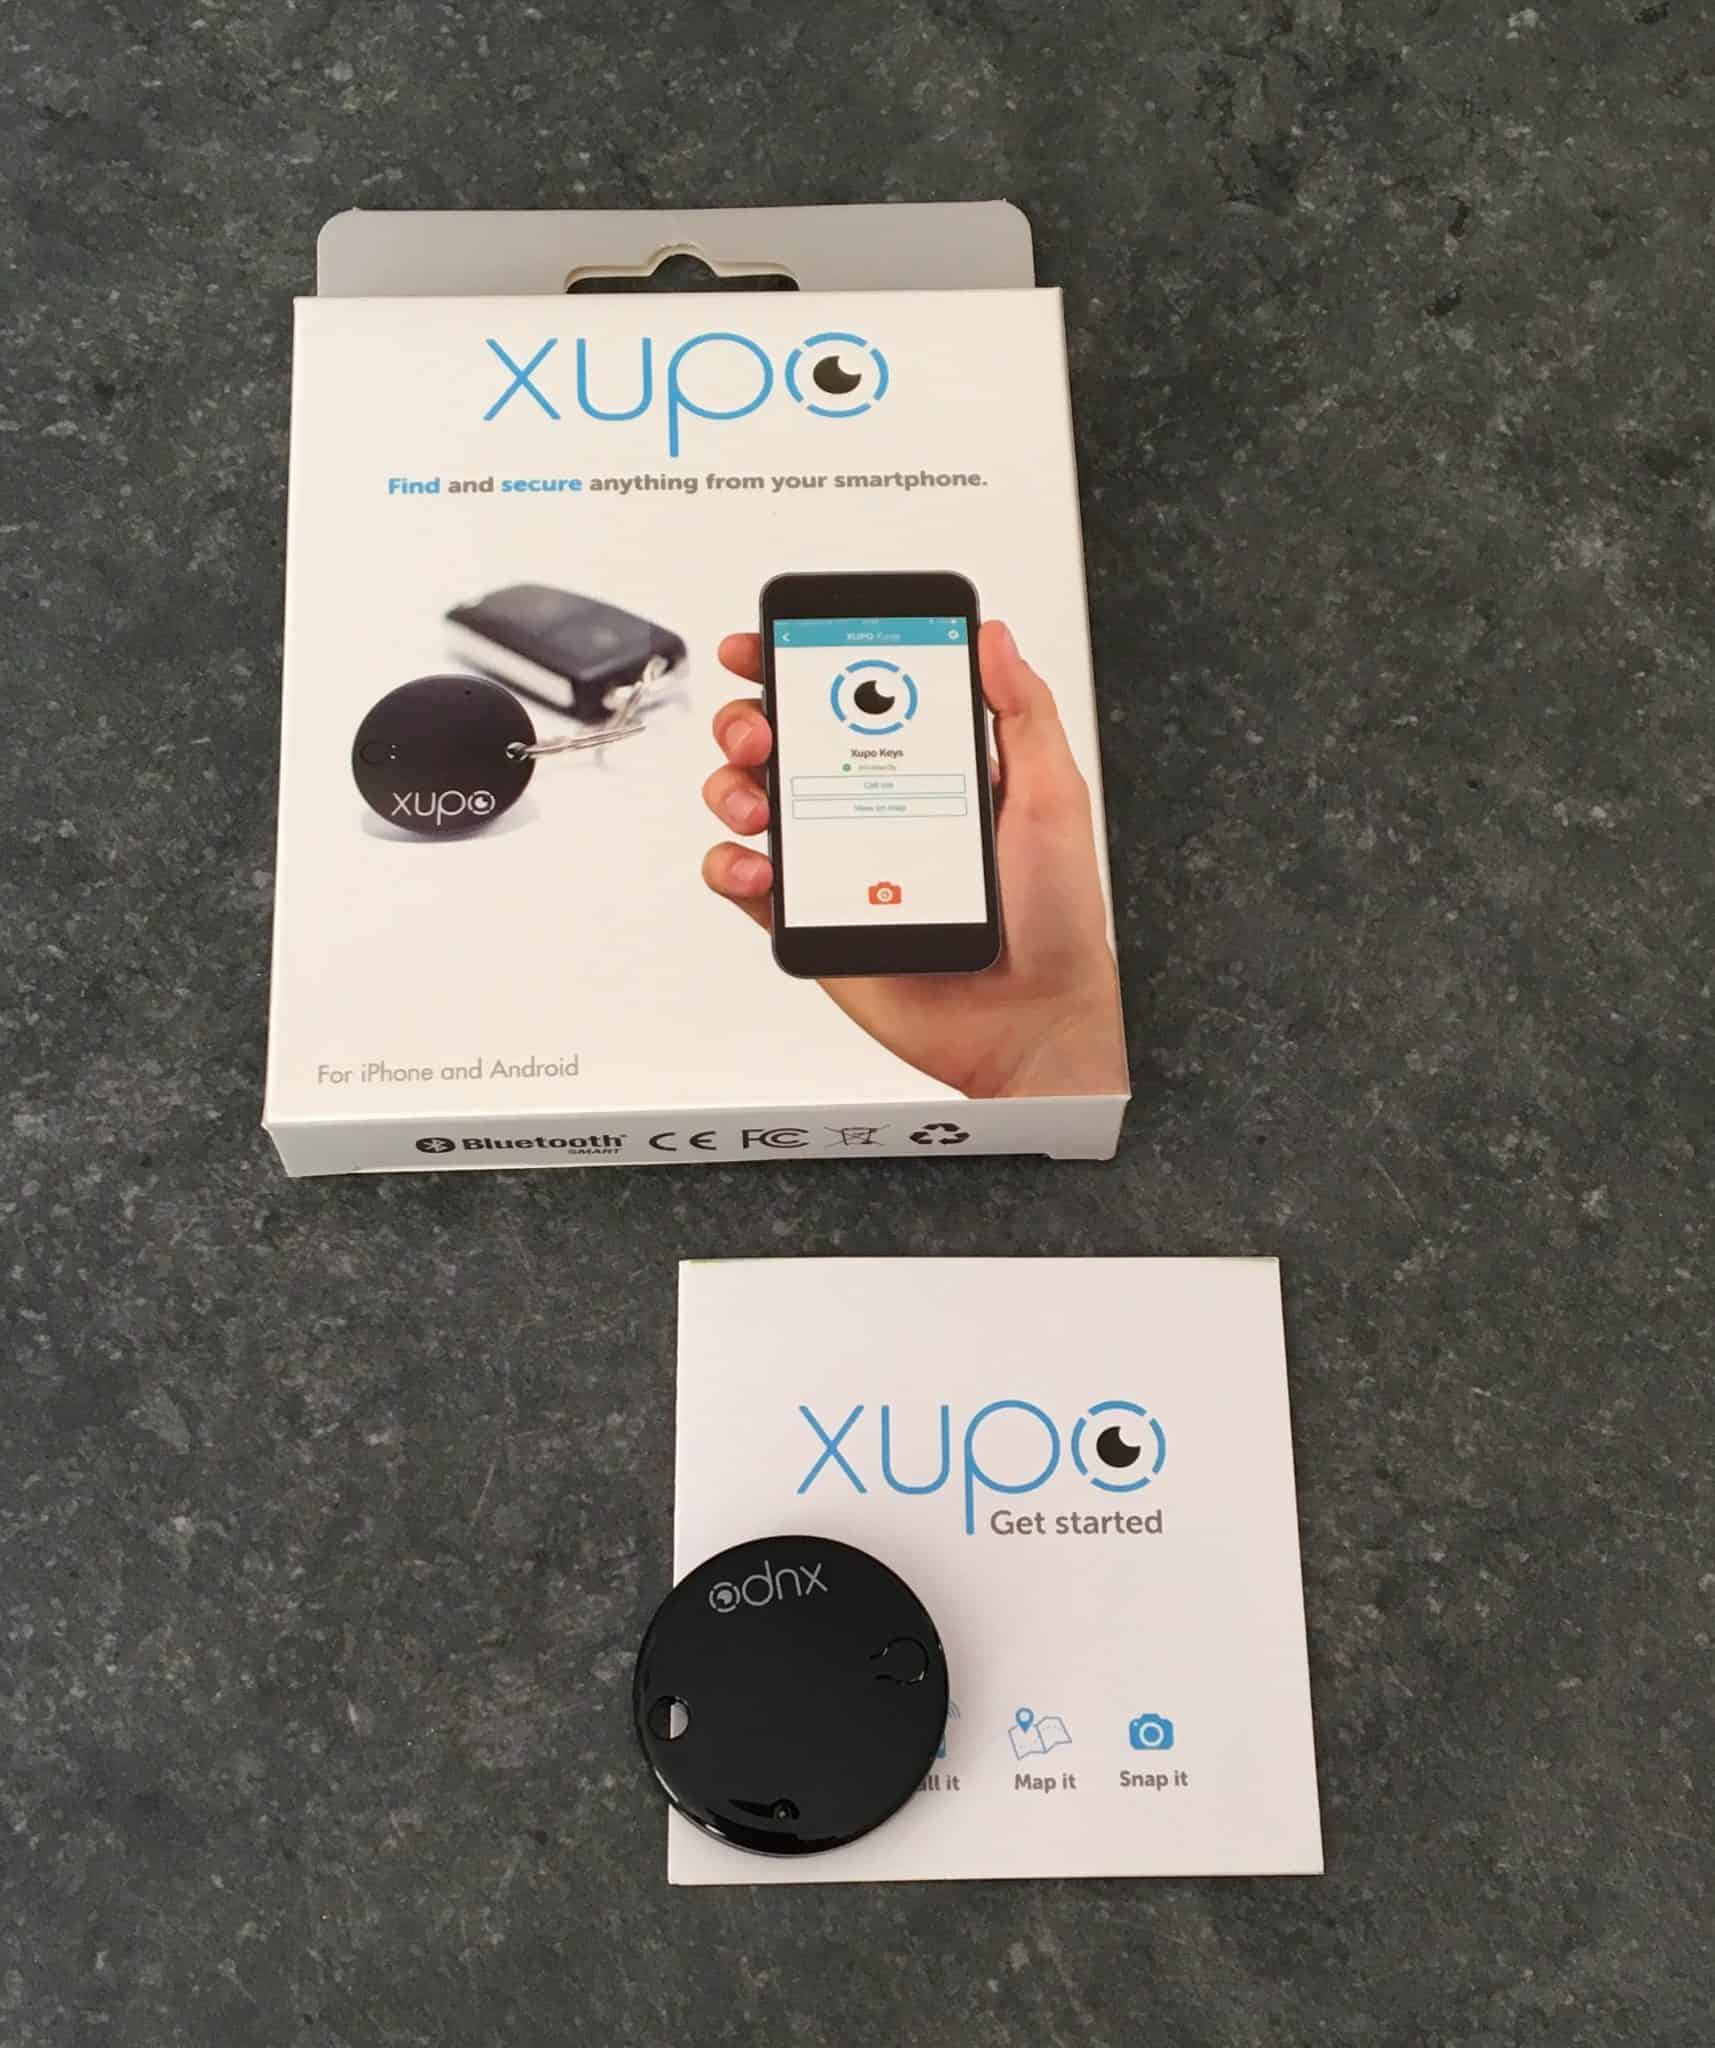 Xupo review and giveaway. Find and secure anything from your smartphone